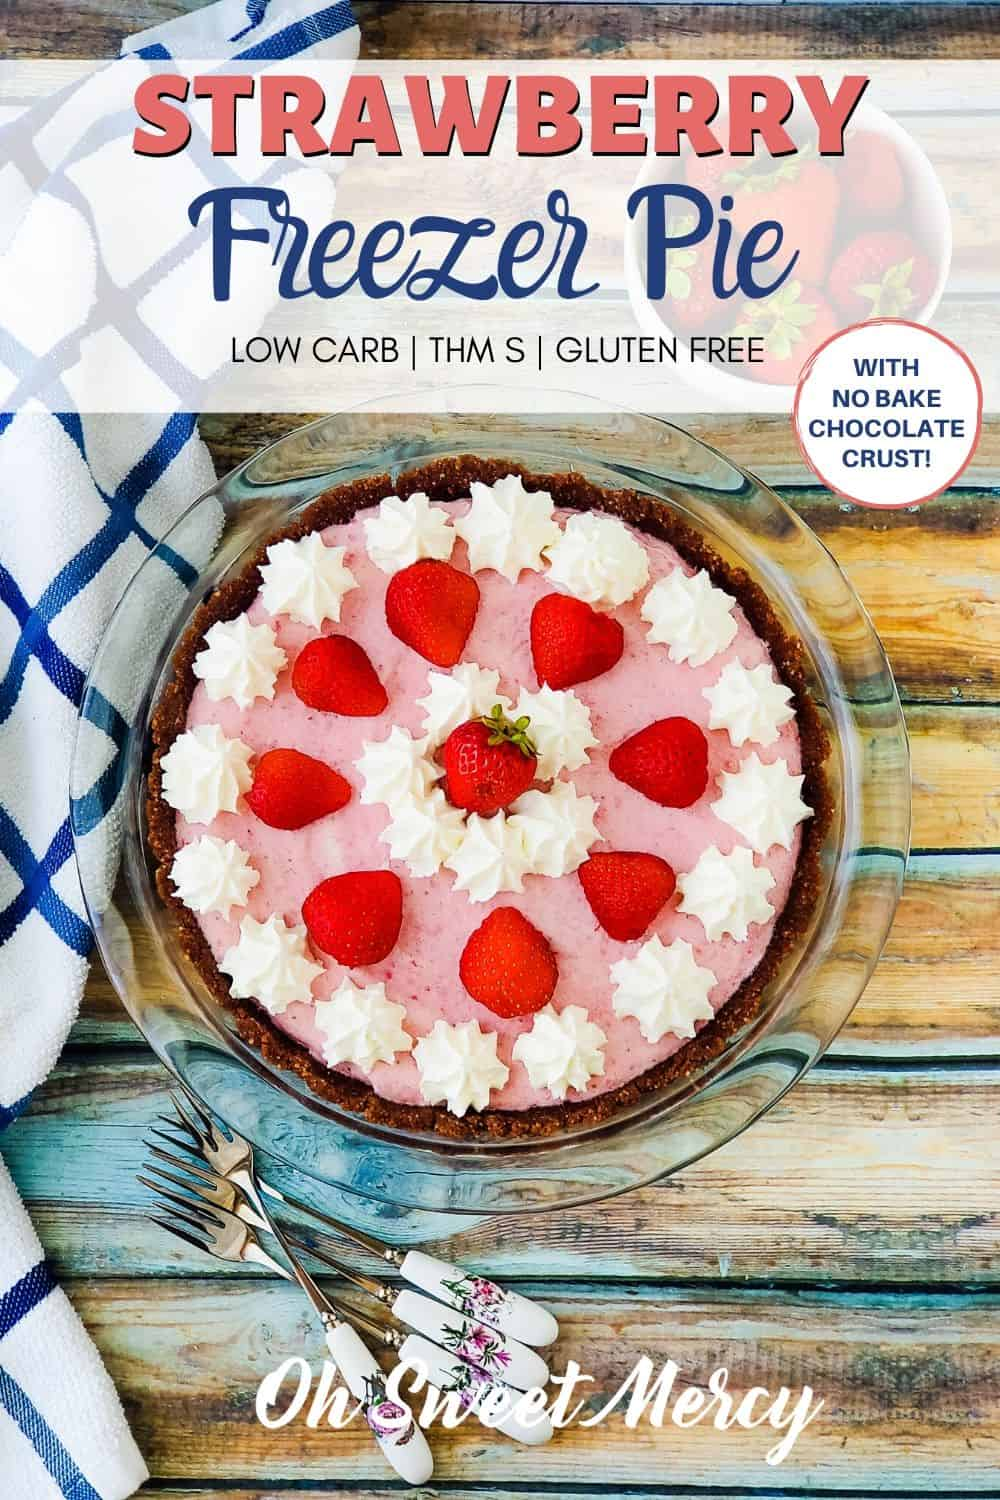 Too hot to bake? No problem! My easy Low Carb Strawberry Freezer Pie is totally no-bake! Strawberries and rich, whipped cream on a low carb chocolate crust means a delicious frozen summer treat perfect for hot days. #lowcarb #thm #thmdesserts #keto #strawberries #freezerpie @ohsweetmercy